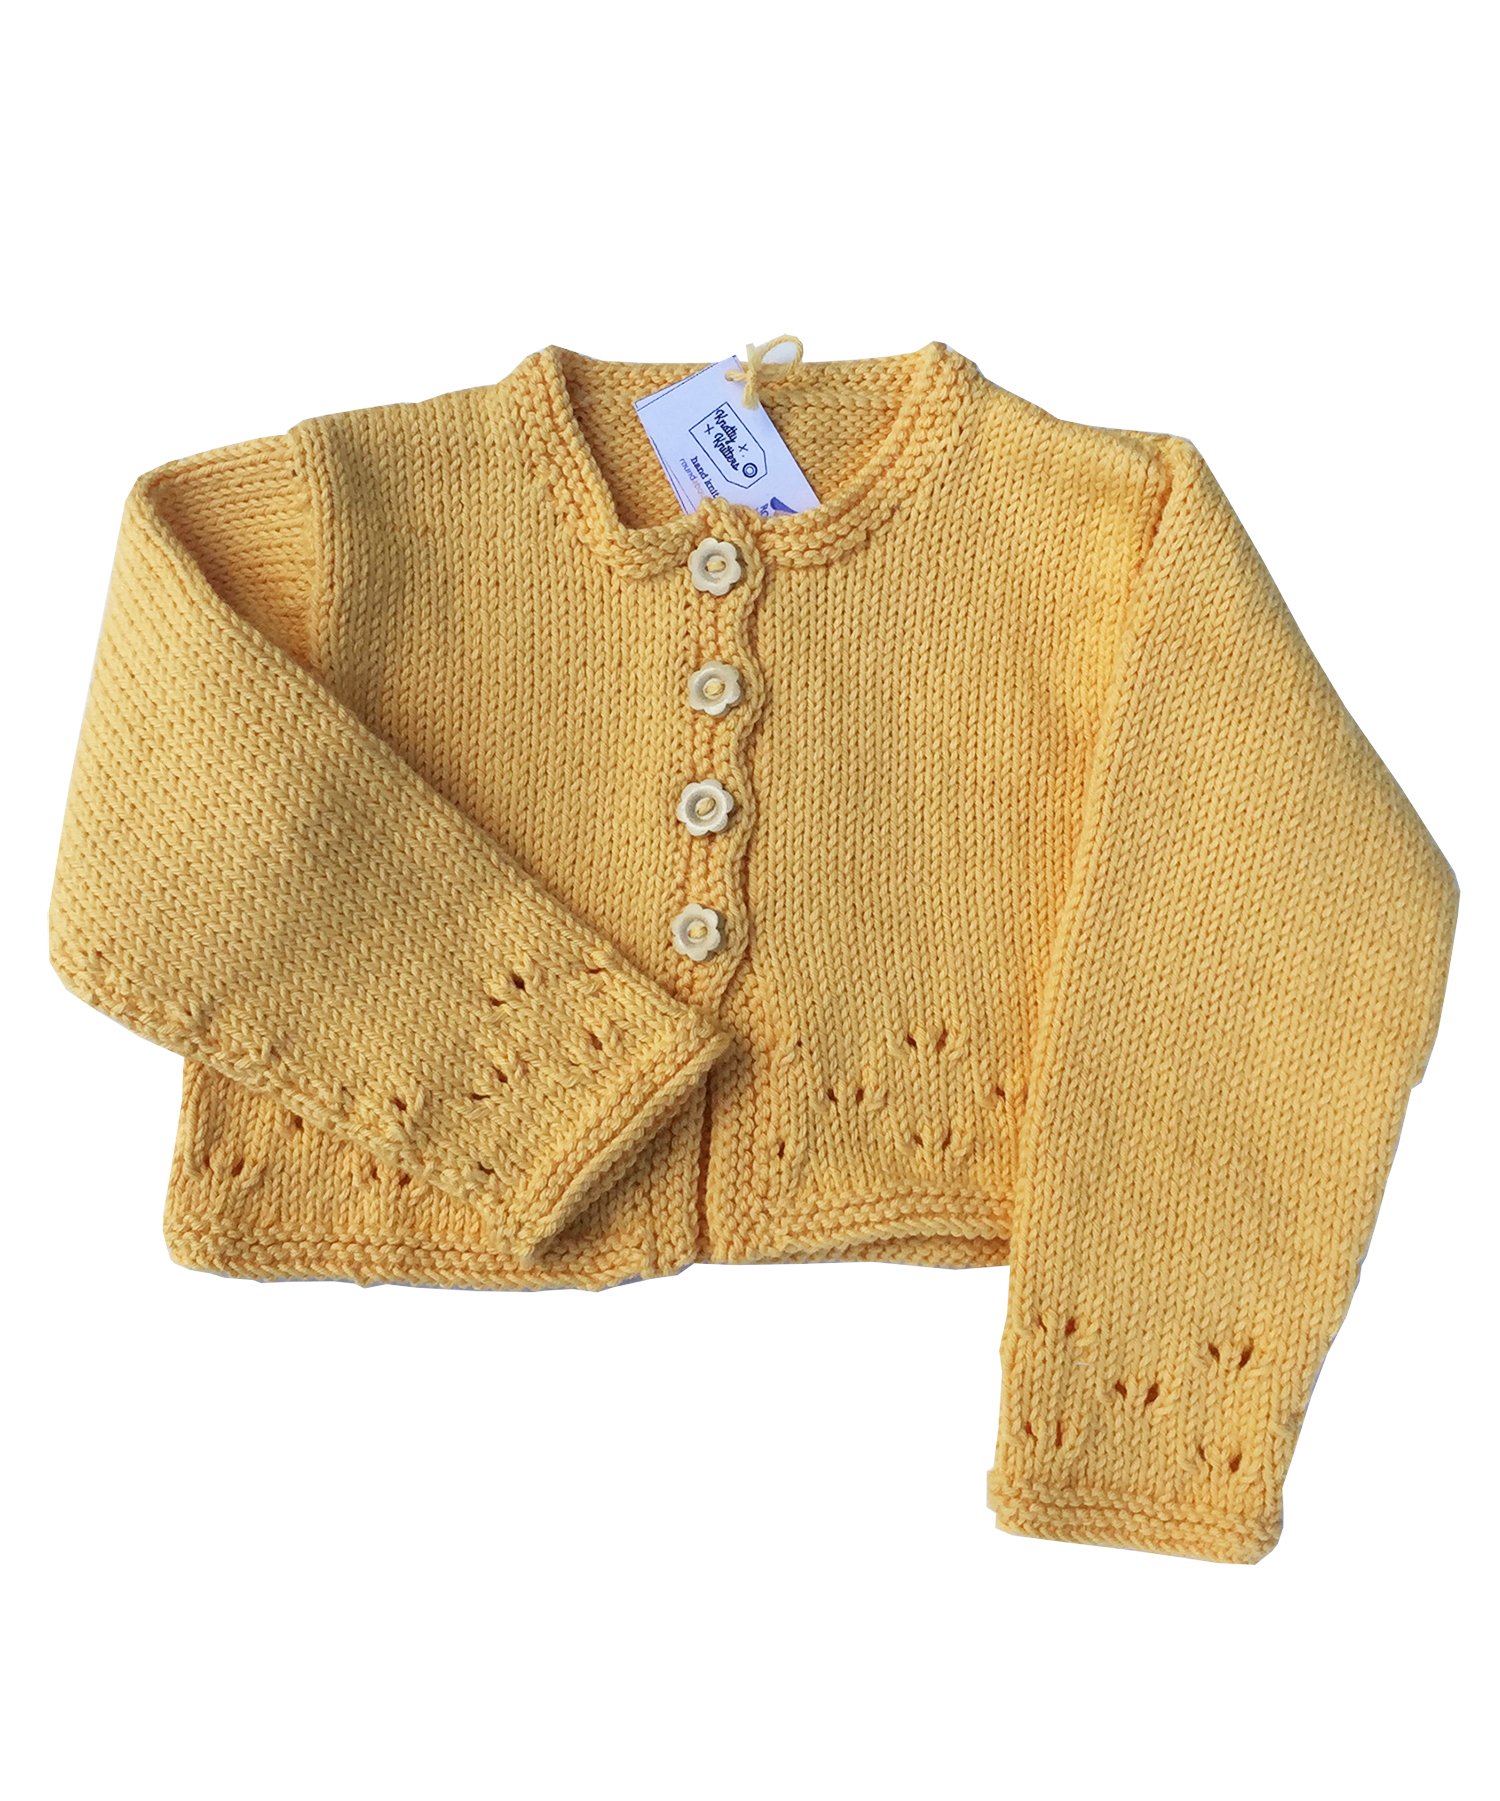 Hand knitted Daisy Cardigan in sunflower yellow